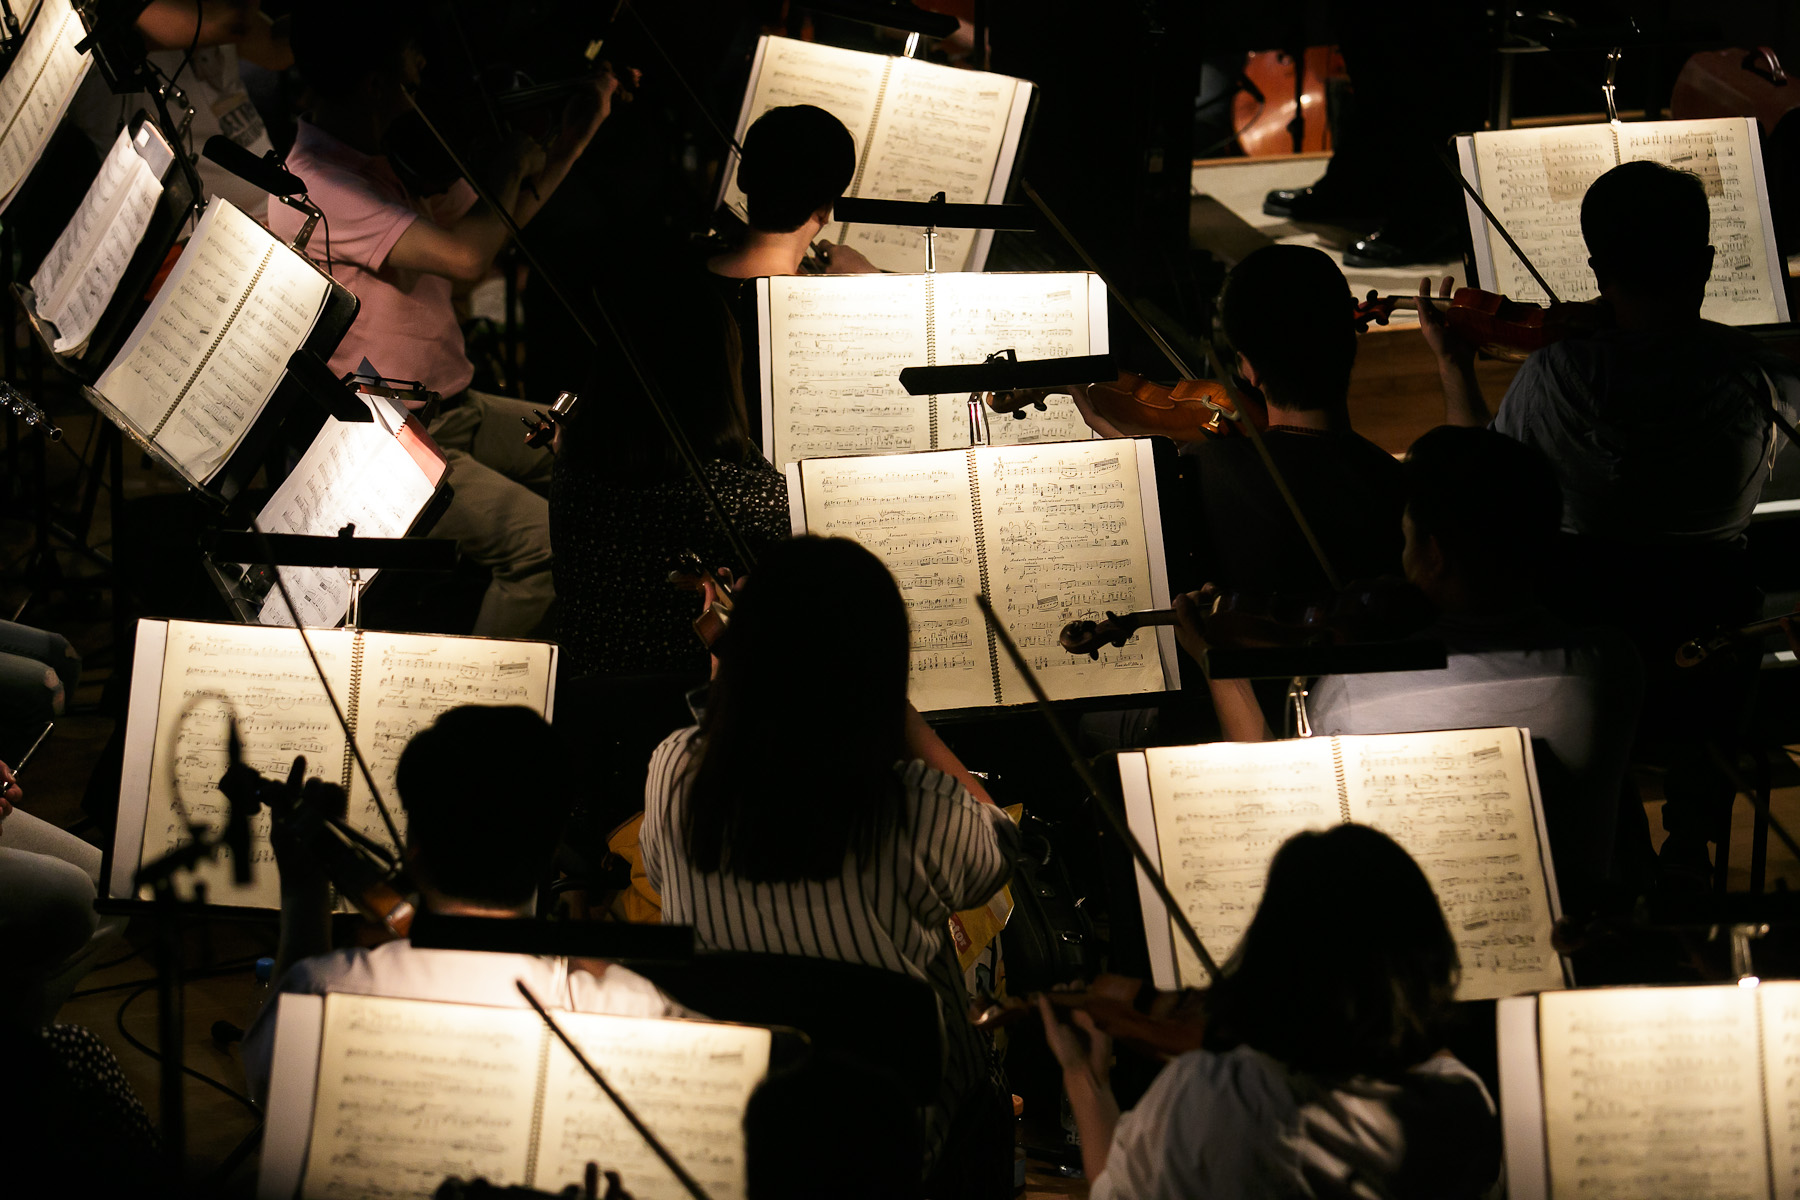 The orchestra rehearses during the second rehearsal of China National Opera House production of Giacomo Puccini\'s Turandot in Cankarjev dom Cultural & Congress center in Ljubljana, Slovenia, Aug. 31, 2015.